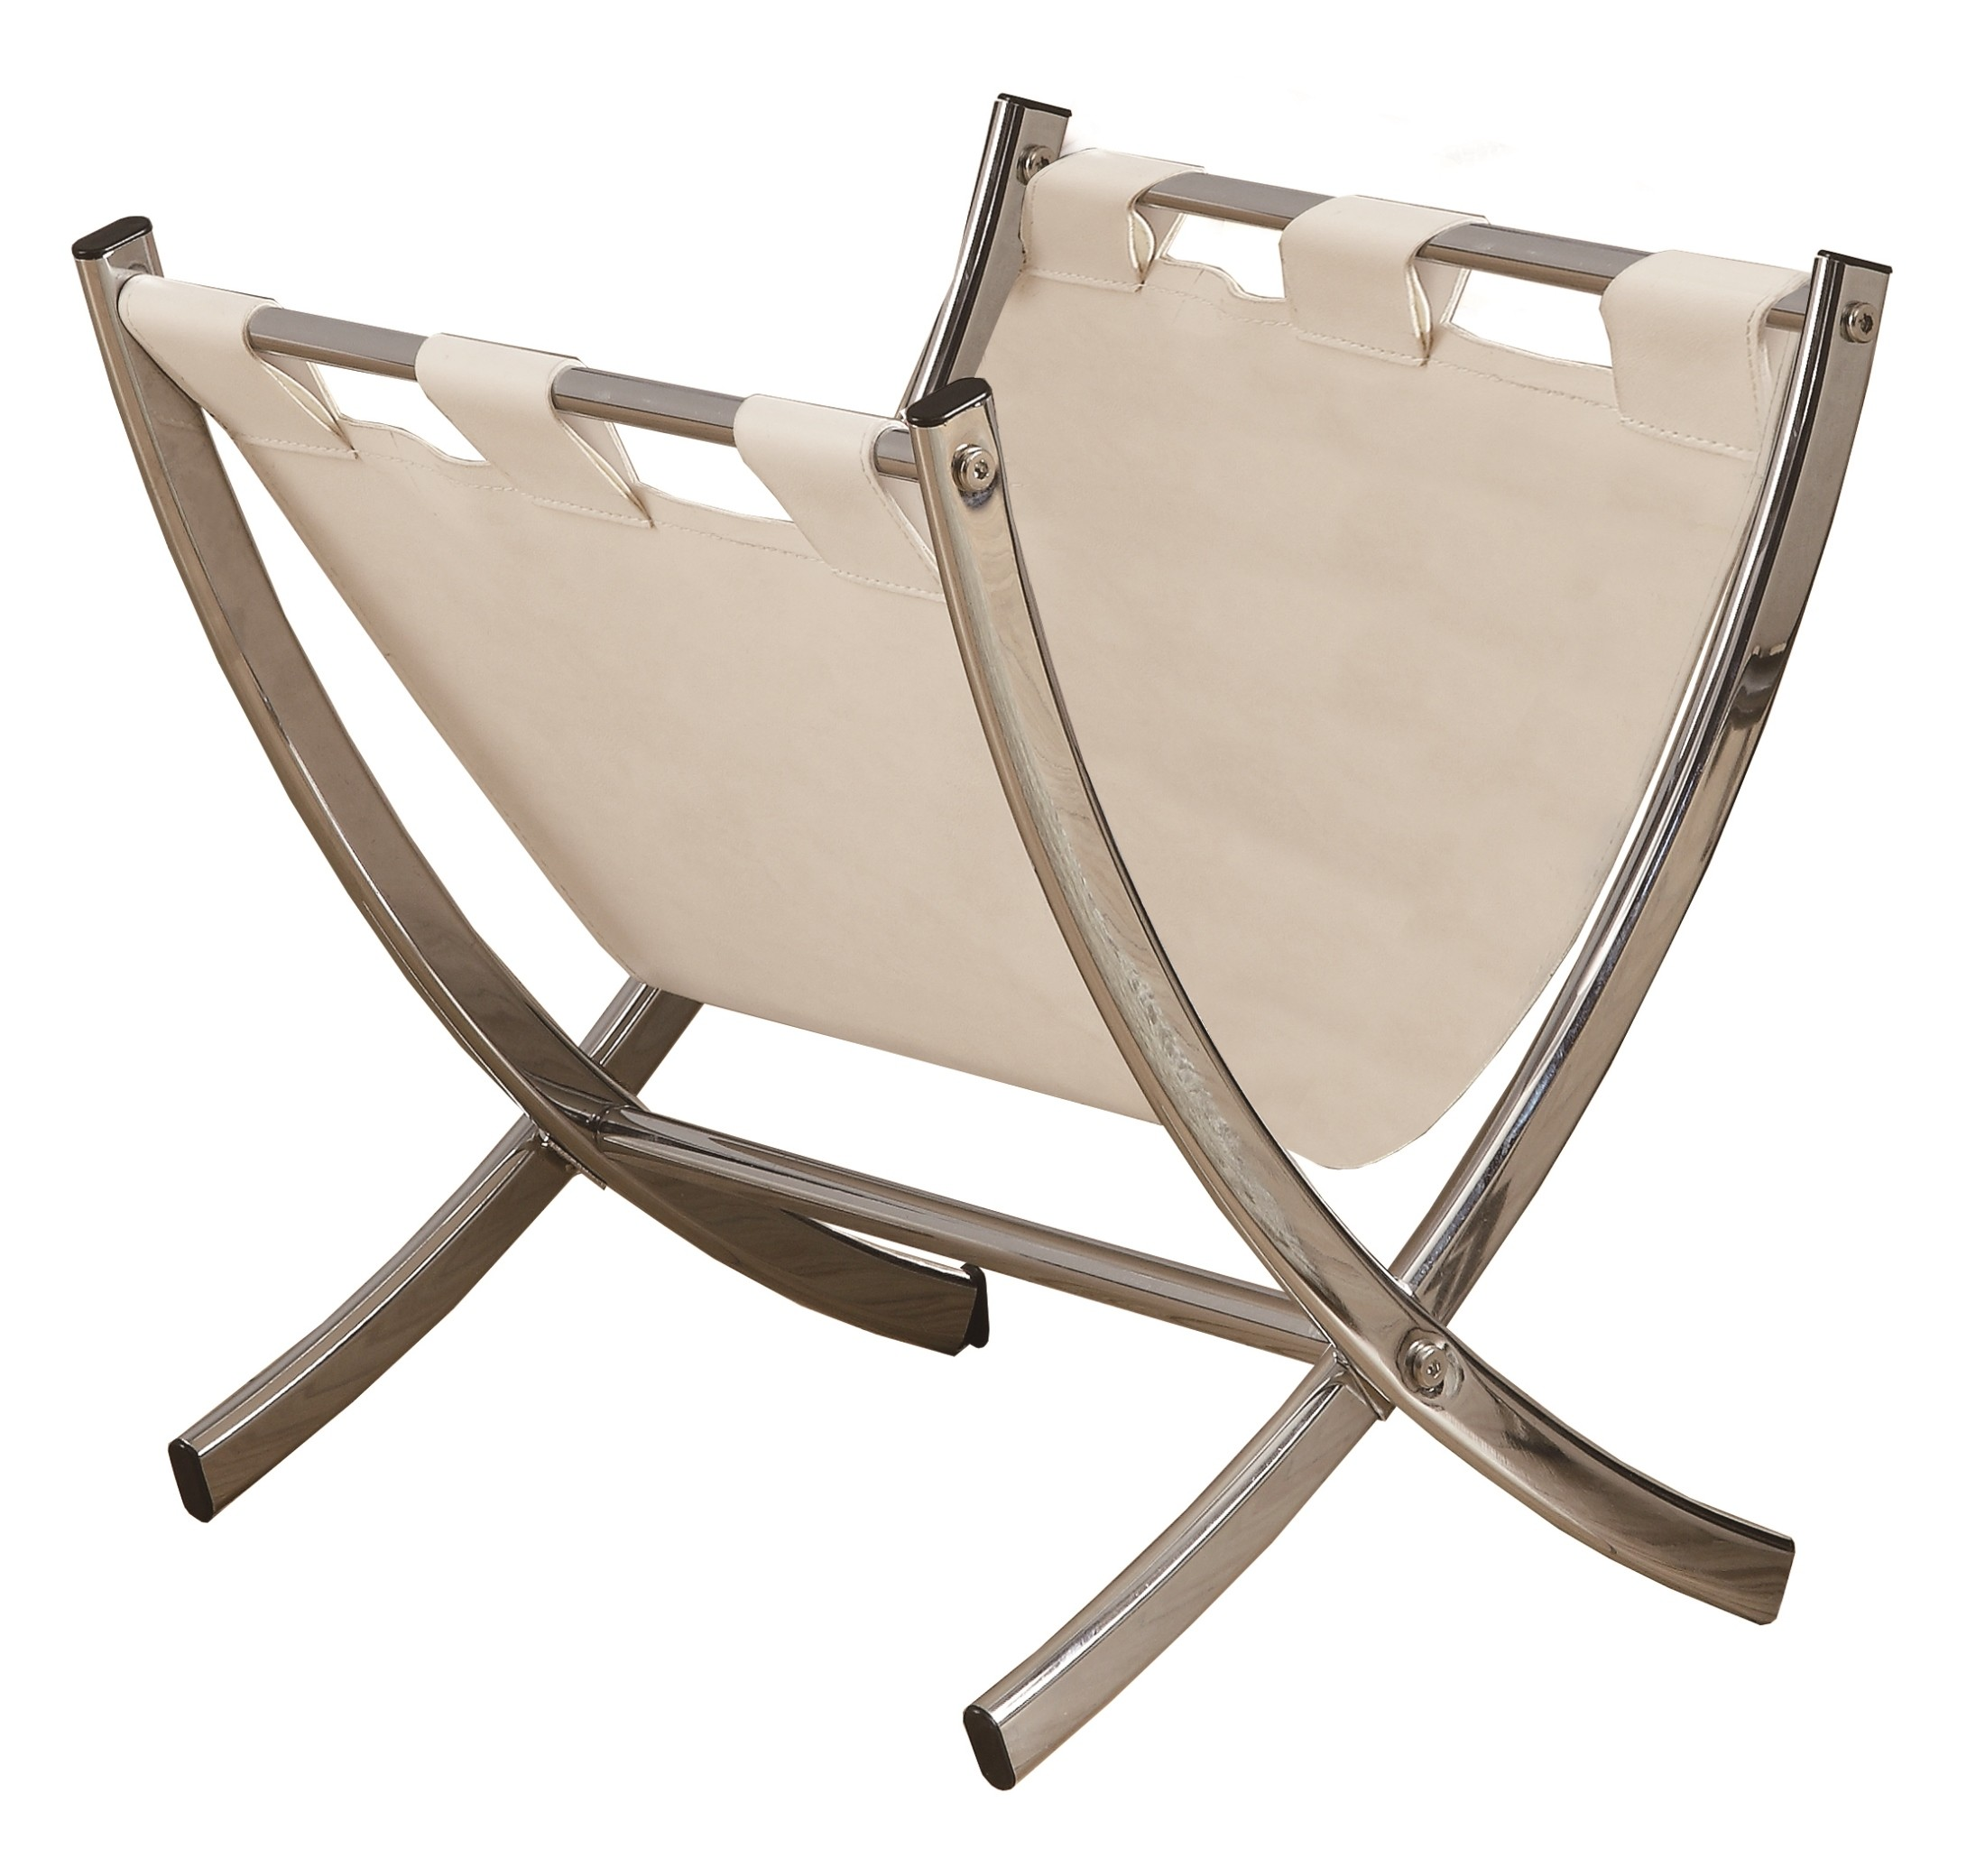 Magazine Holders. Showing 40 of results that match your query. Search Product Result. InterDesign York Lyra Newspaper and Magazine Rack for Bathroom, Office, Den. Product Image. Price $ Free Standing Metal Magazine Rack, Newspaper Stand. Product Image.